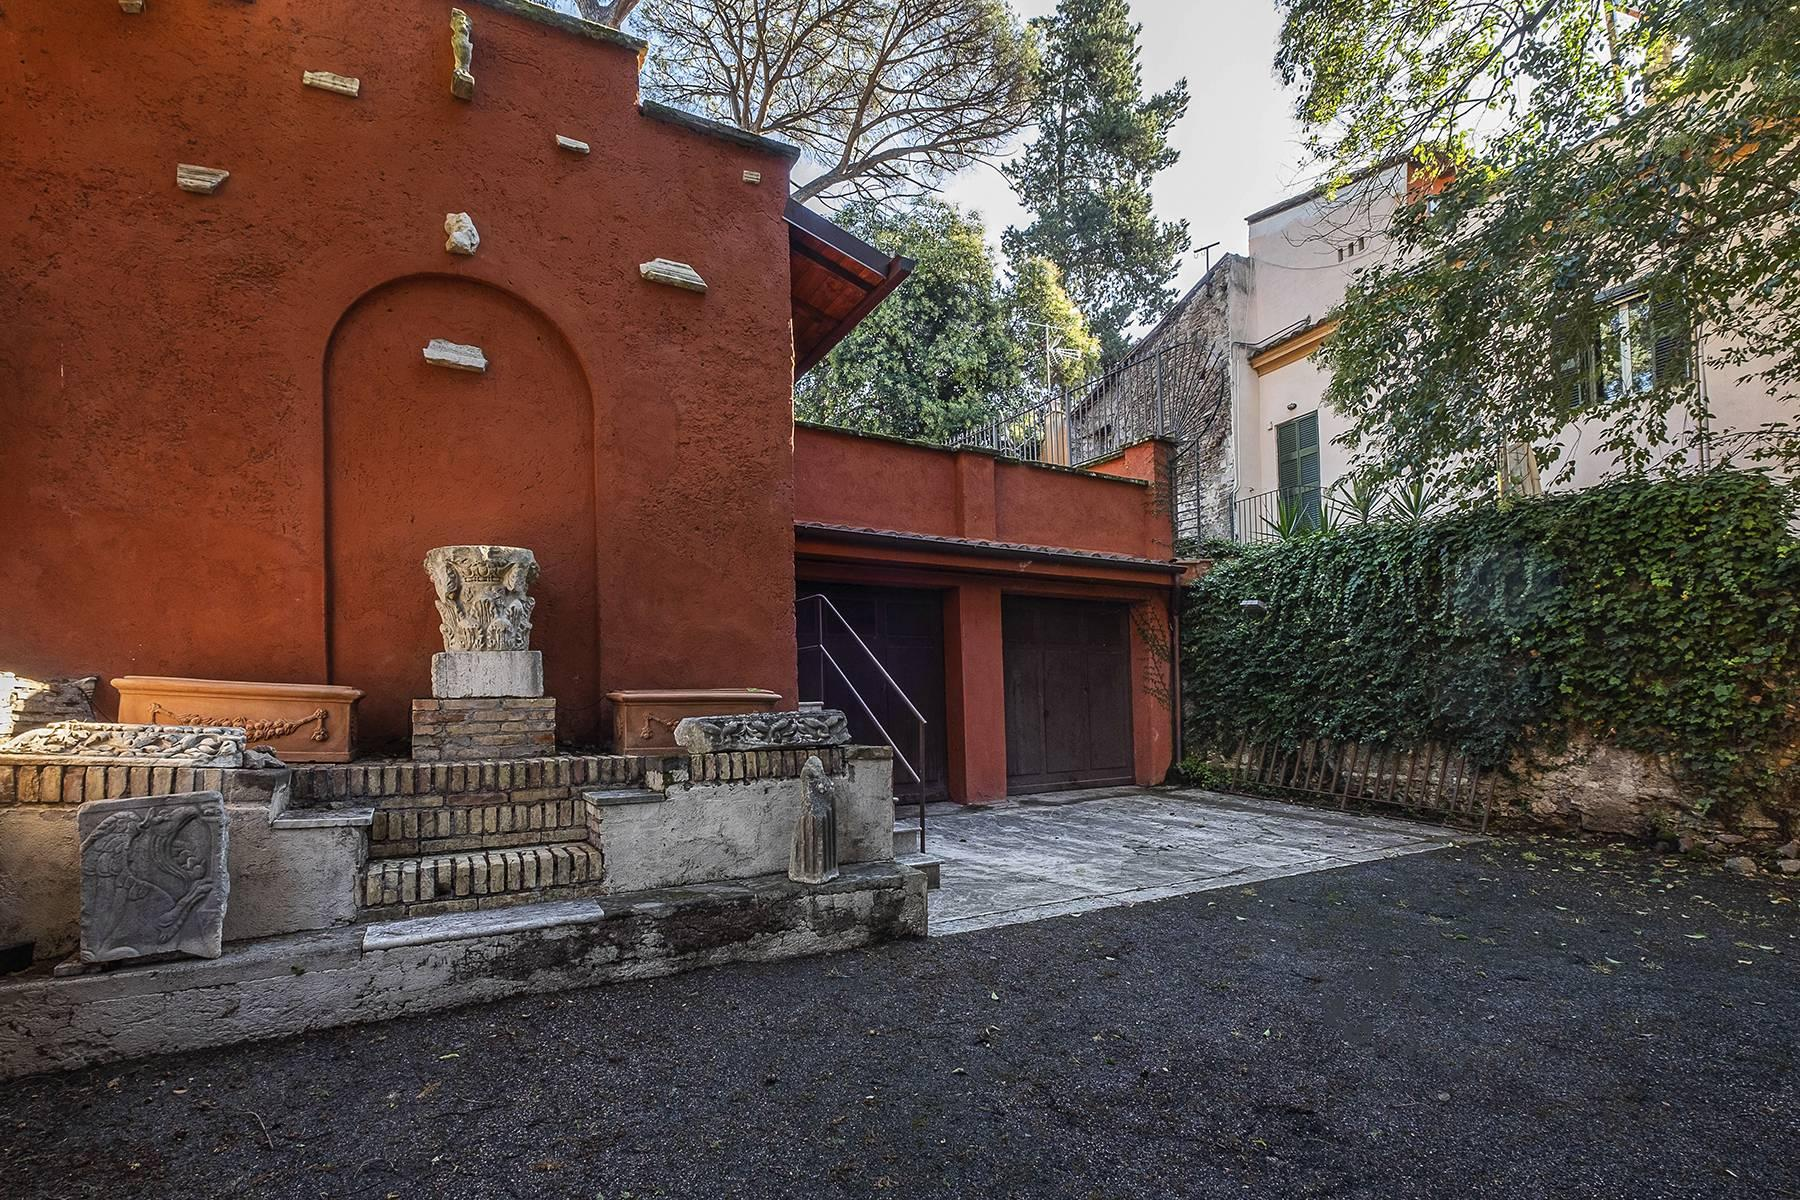 Elegant classical  Villa in the heart of Rome's archaeological ruins - 26